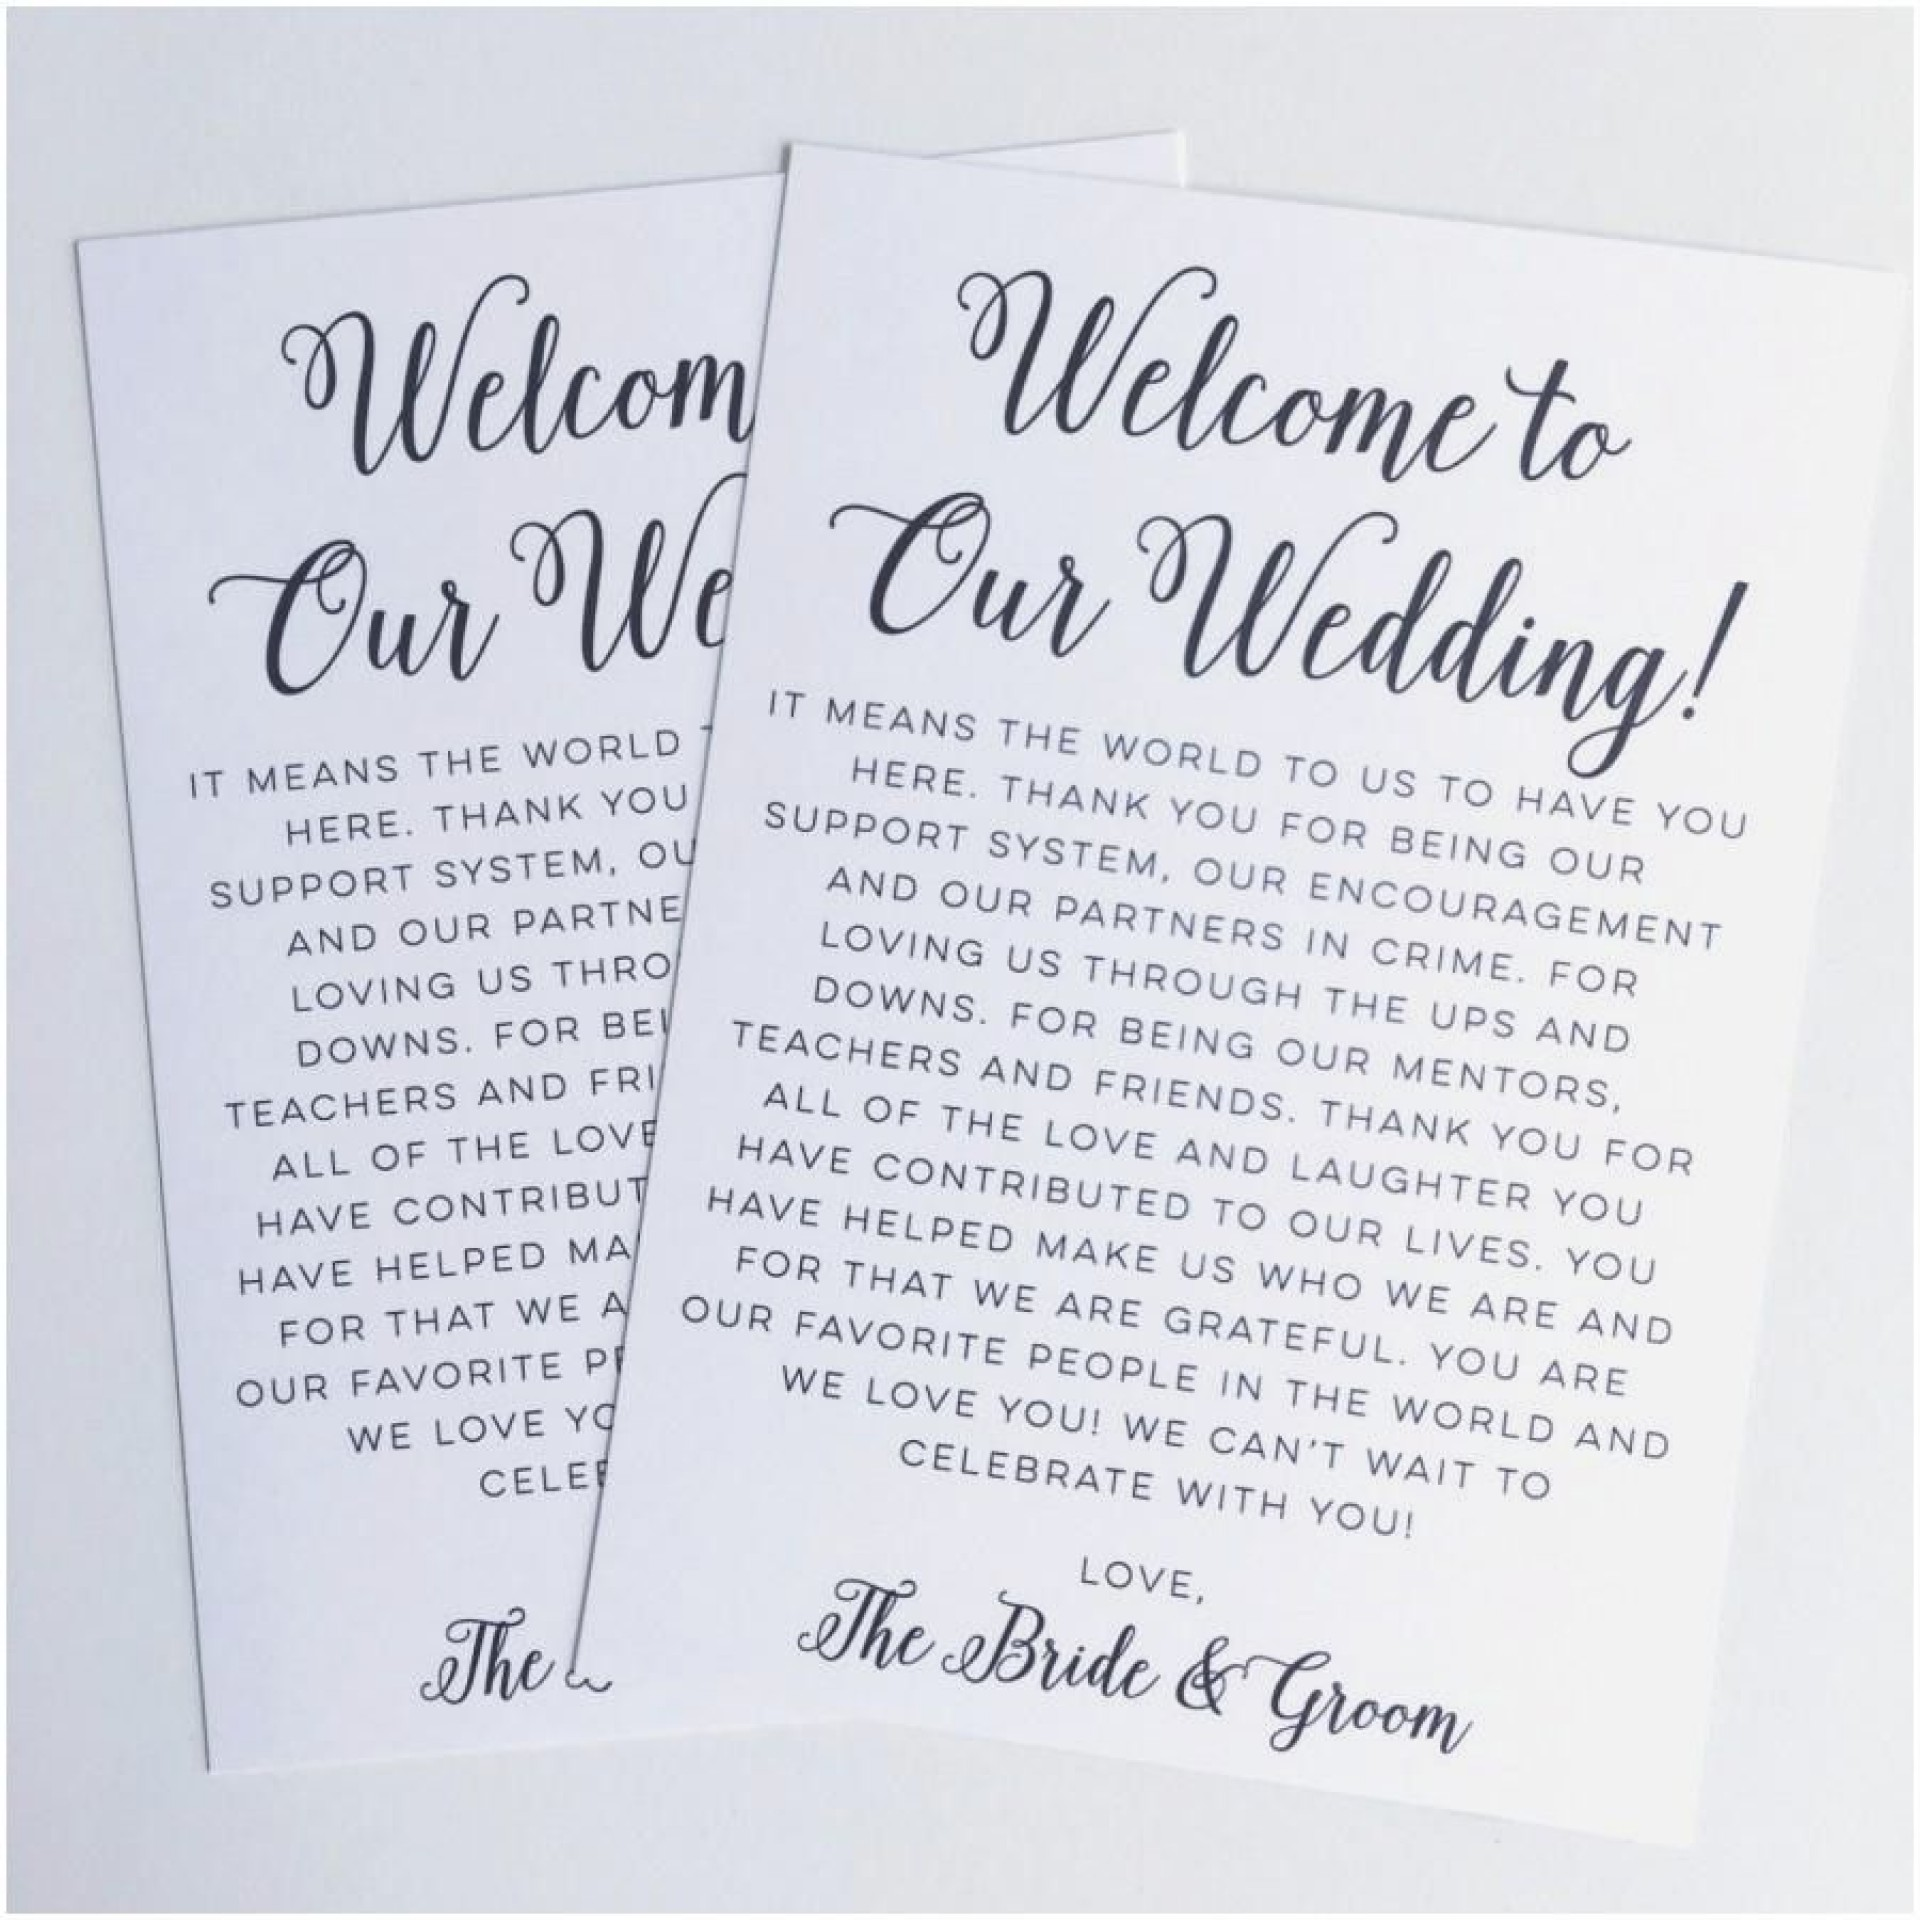 008 Wonderful Wedding Welcome Bag Letter Template Concept  Free1920